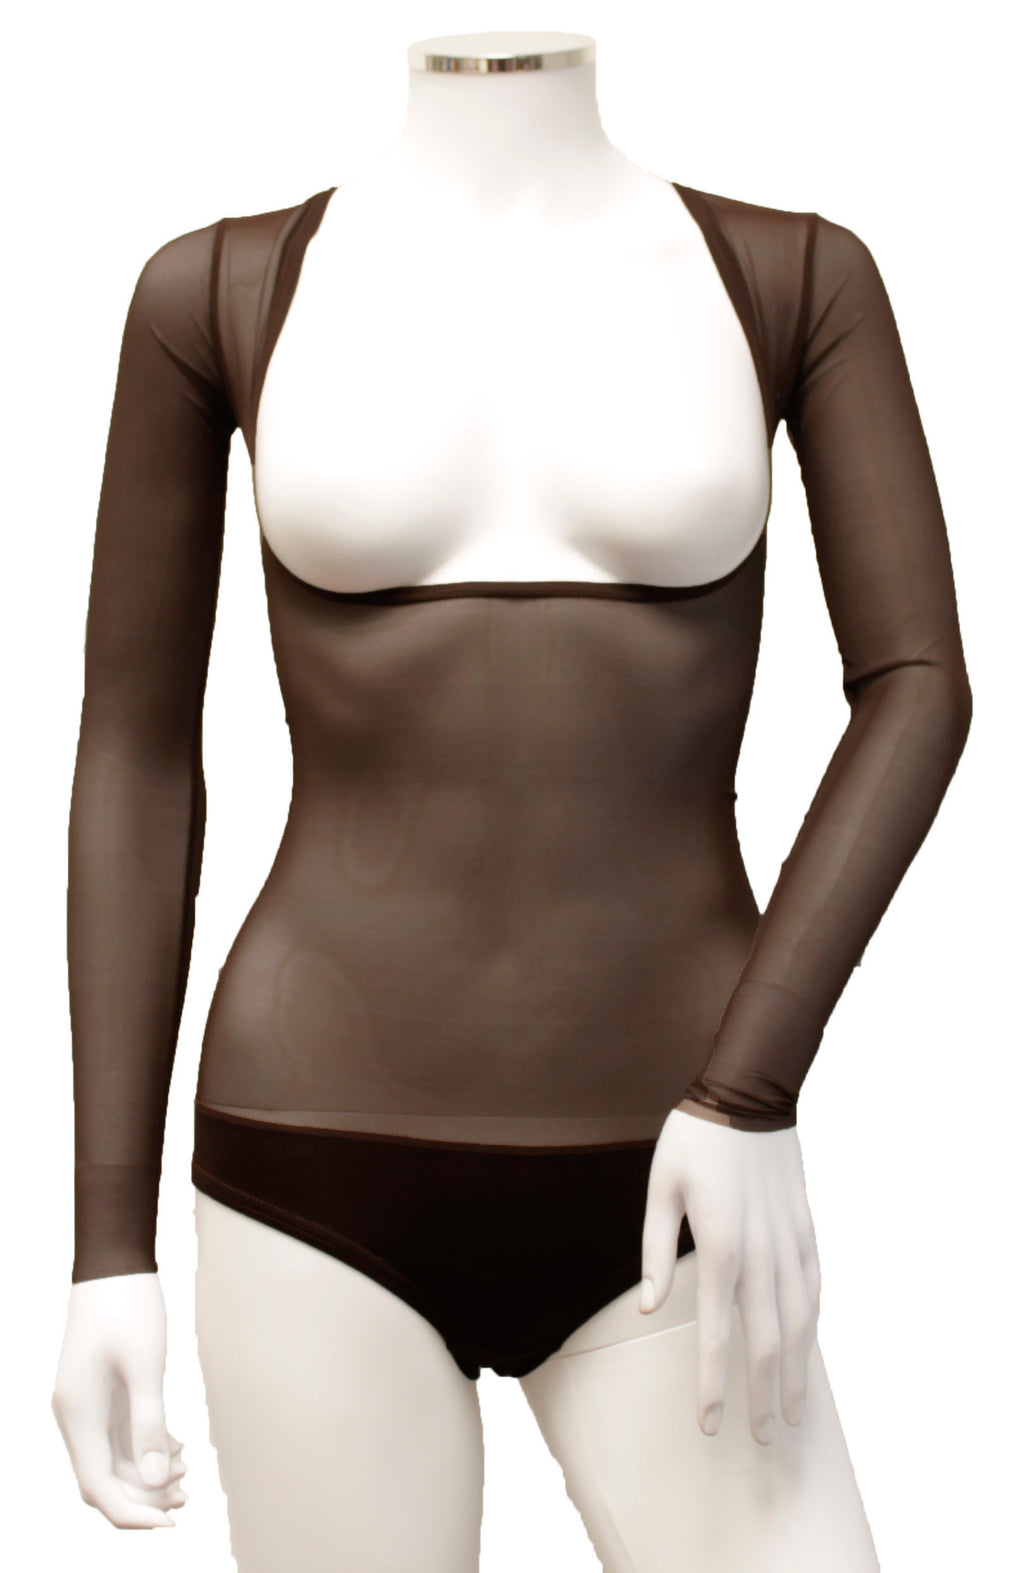 S - Underbust with Sleeves